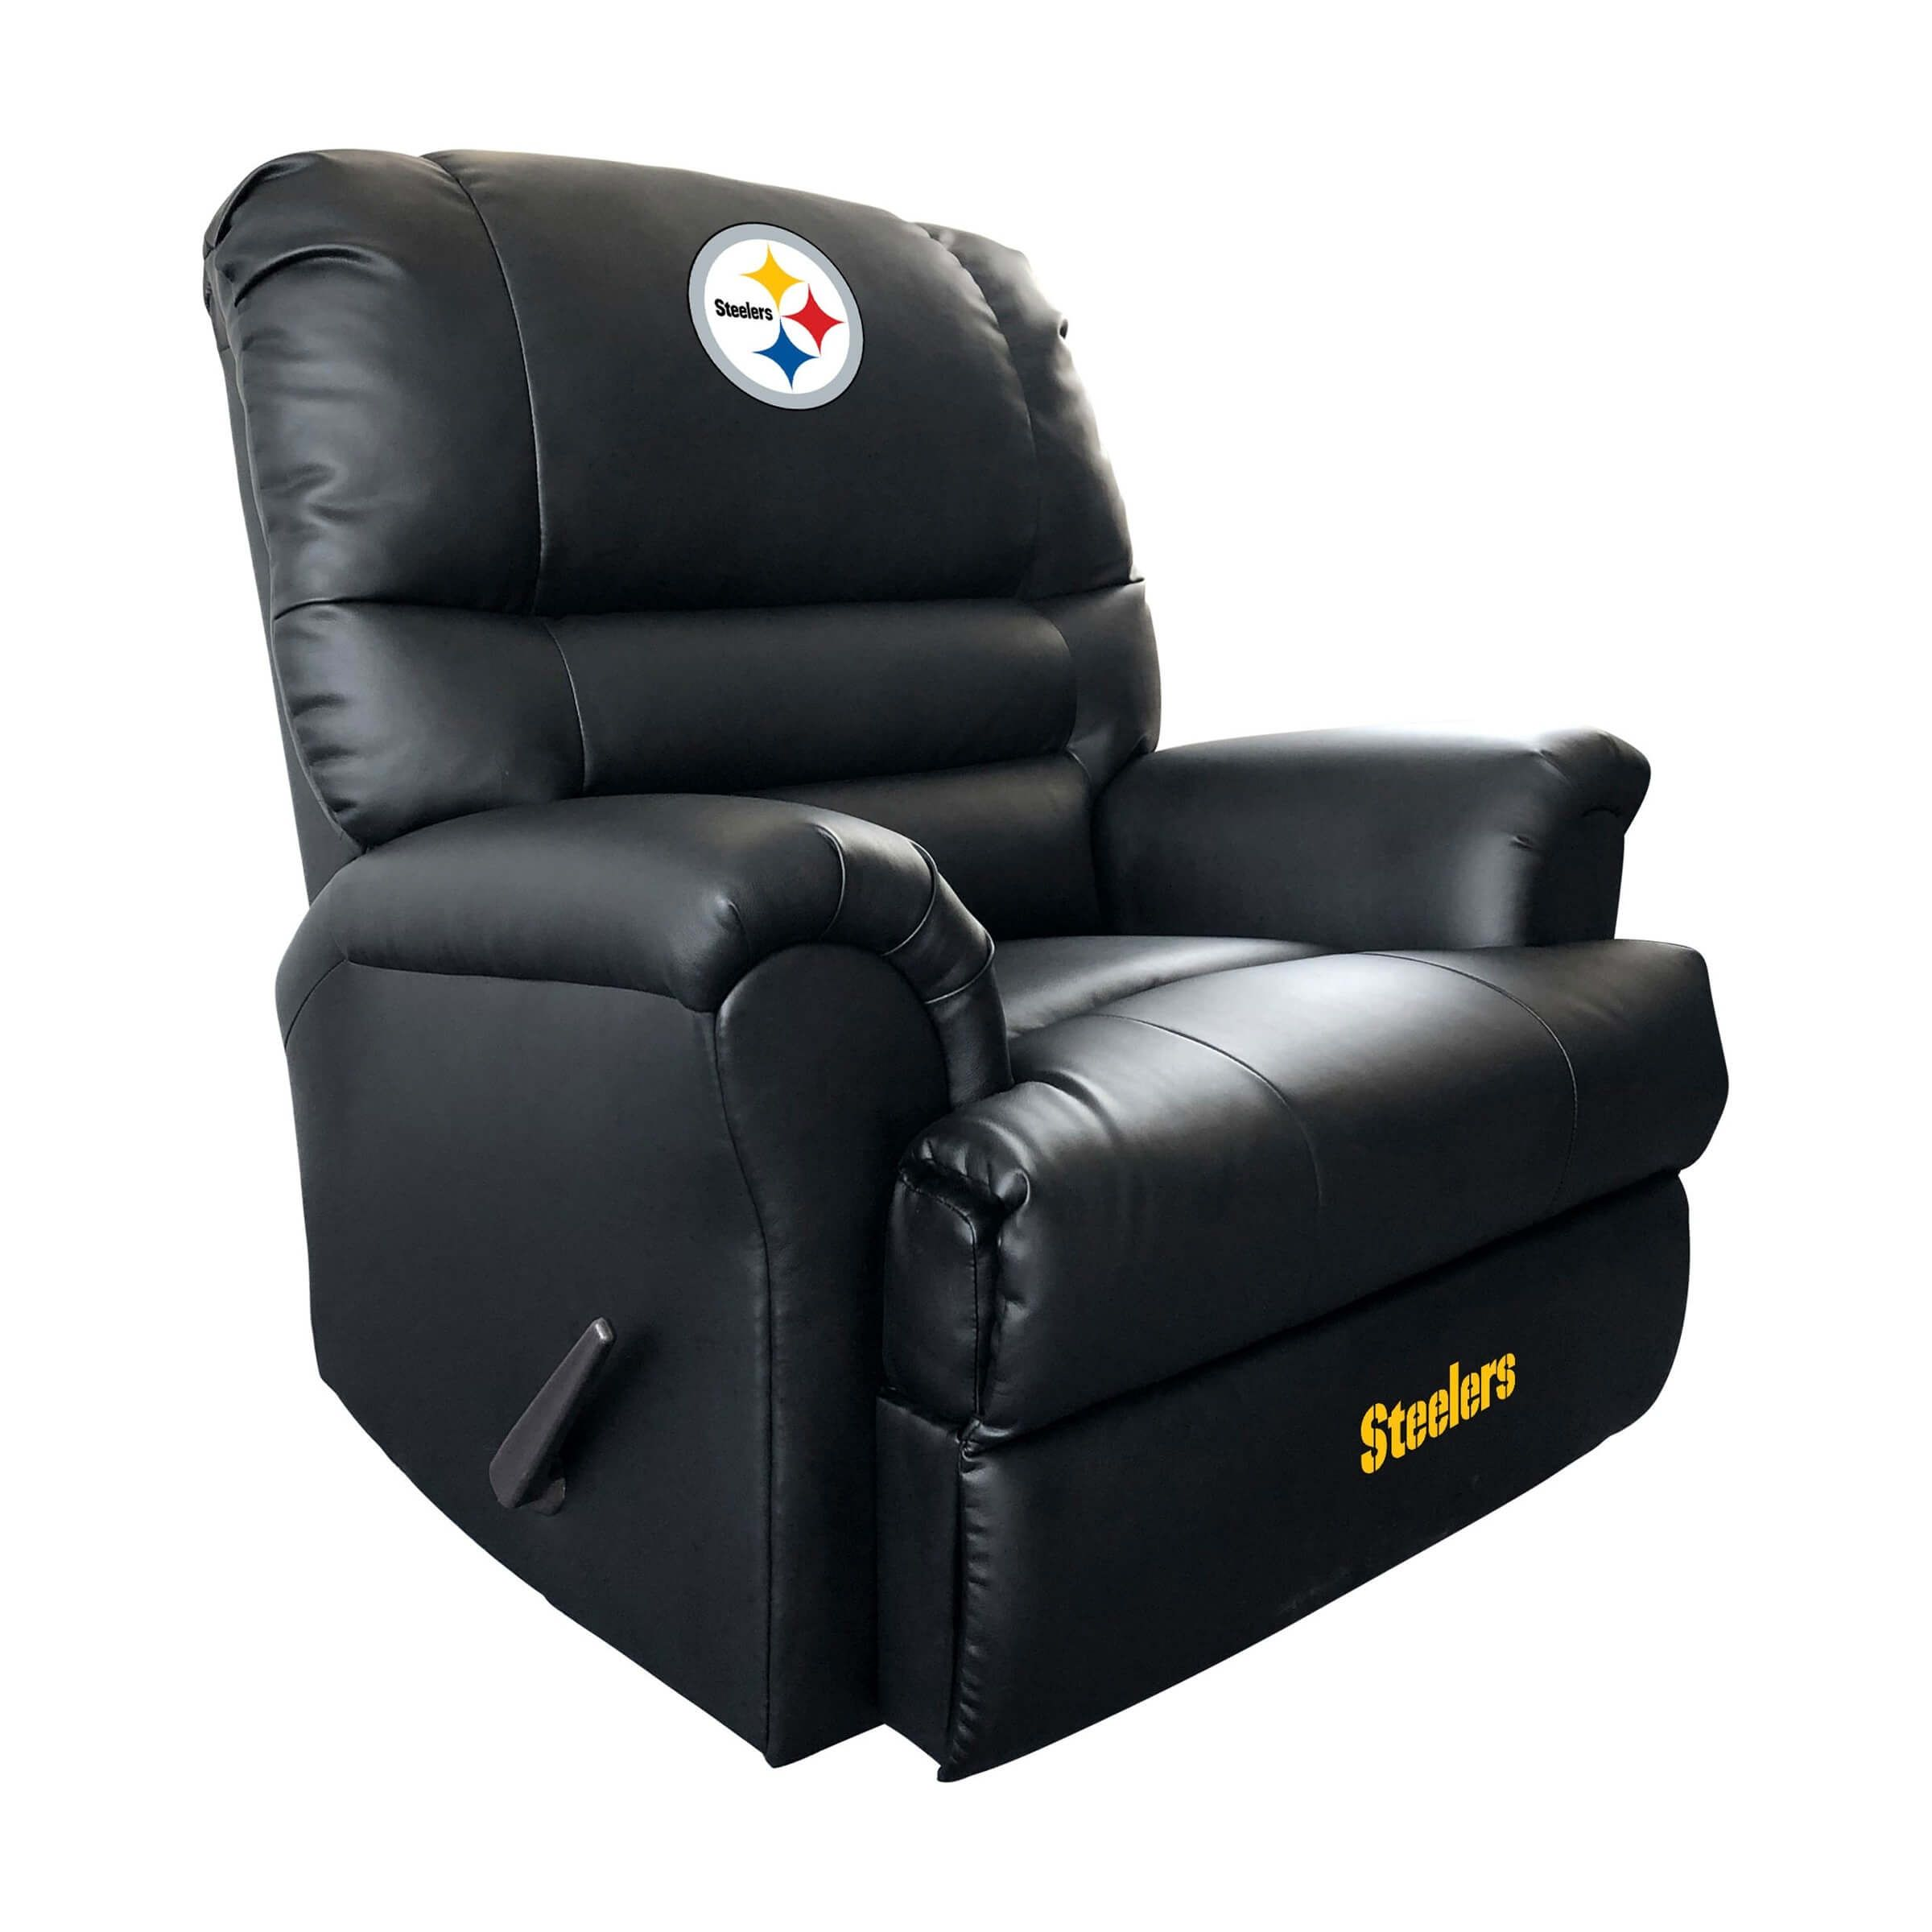 Pittsburgh Steelers Sports Recliner Leather Recliner Rocker Recliners Recliner With Ottoman